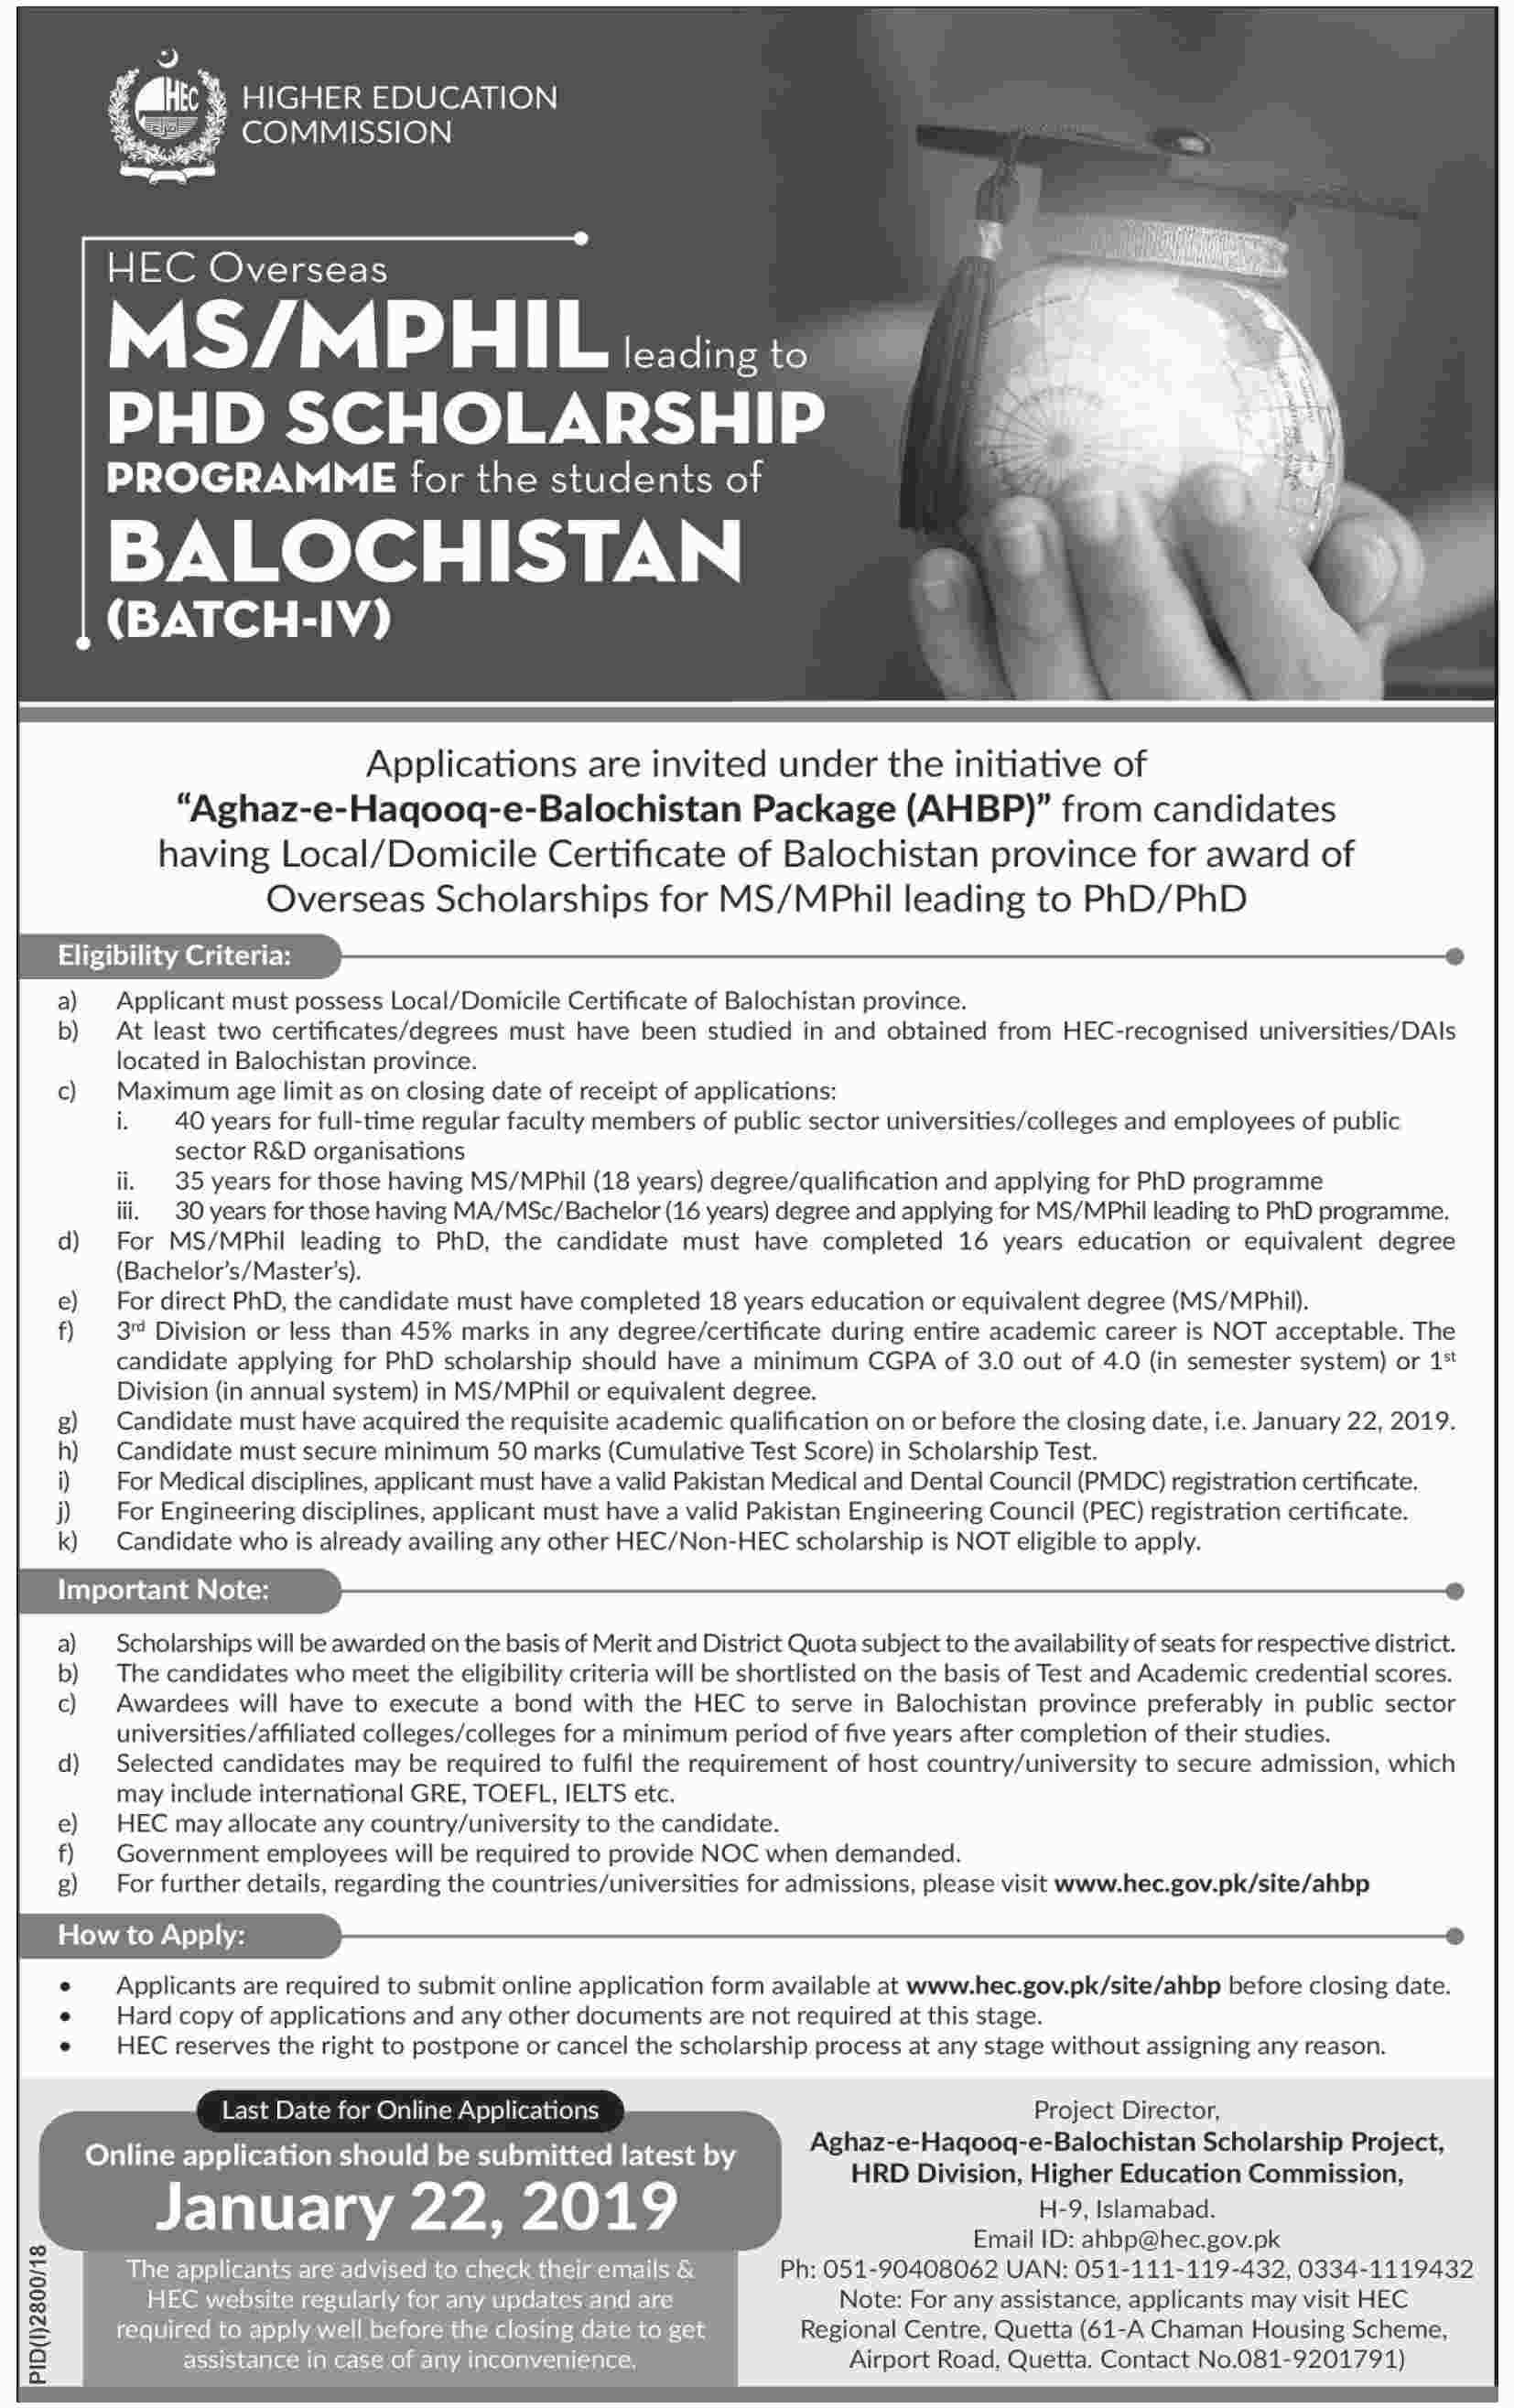 HEC Overseas MS/ MPhil Leading to PhD Scholarship Programme for the Students of Balochistan (Batch-IV)